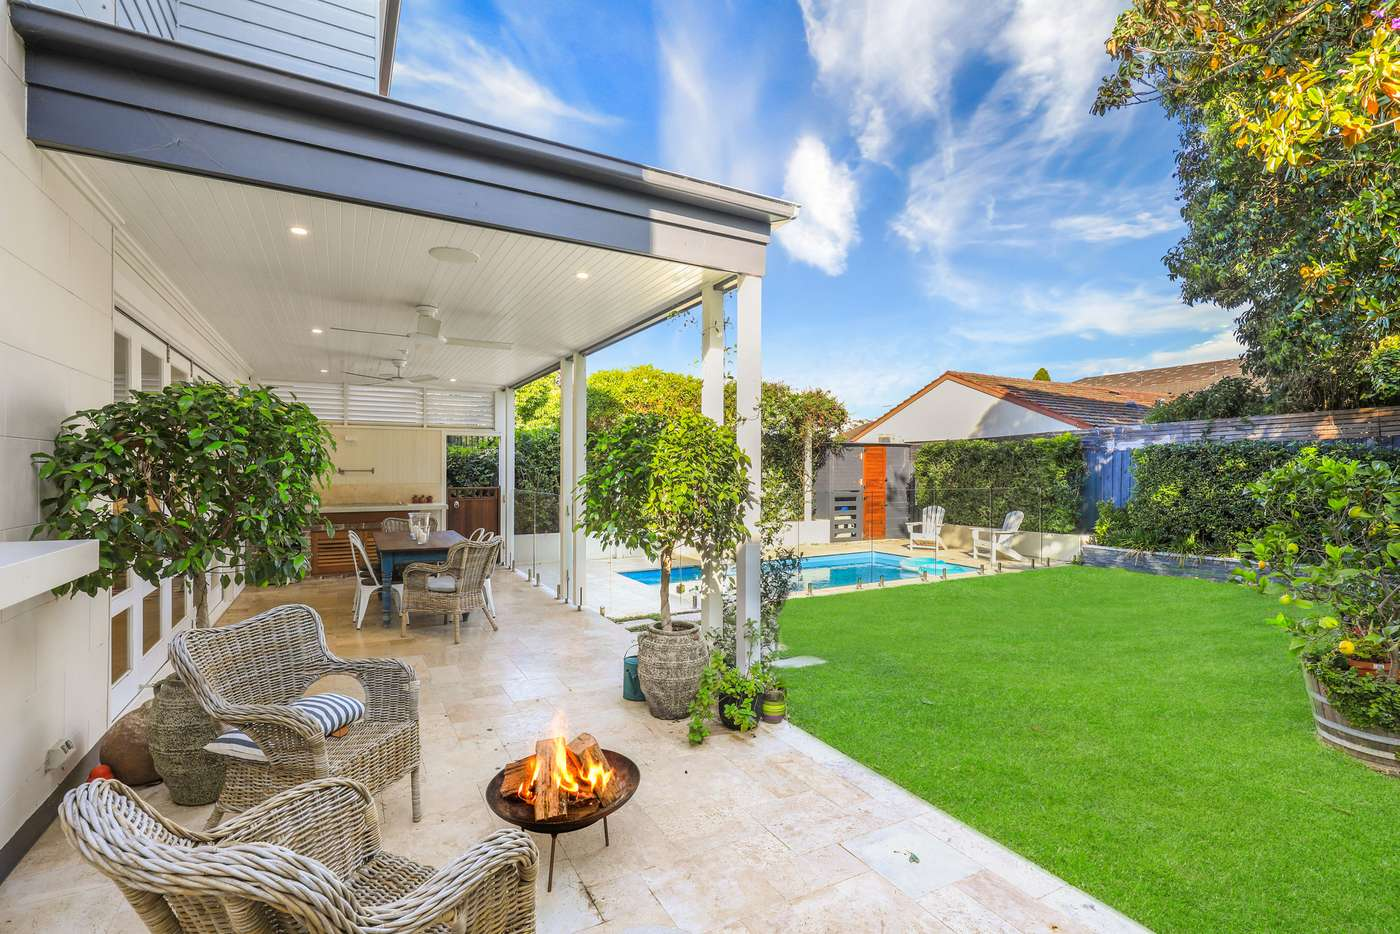 Fifth view of Homely house listing, 105 Bland Street, Ashfield NSW 2131